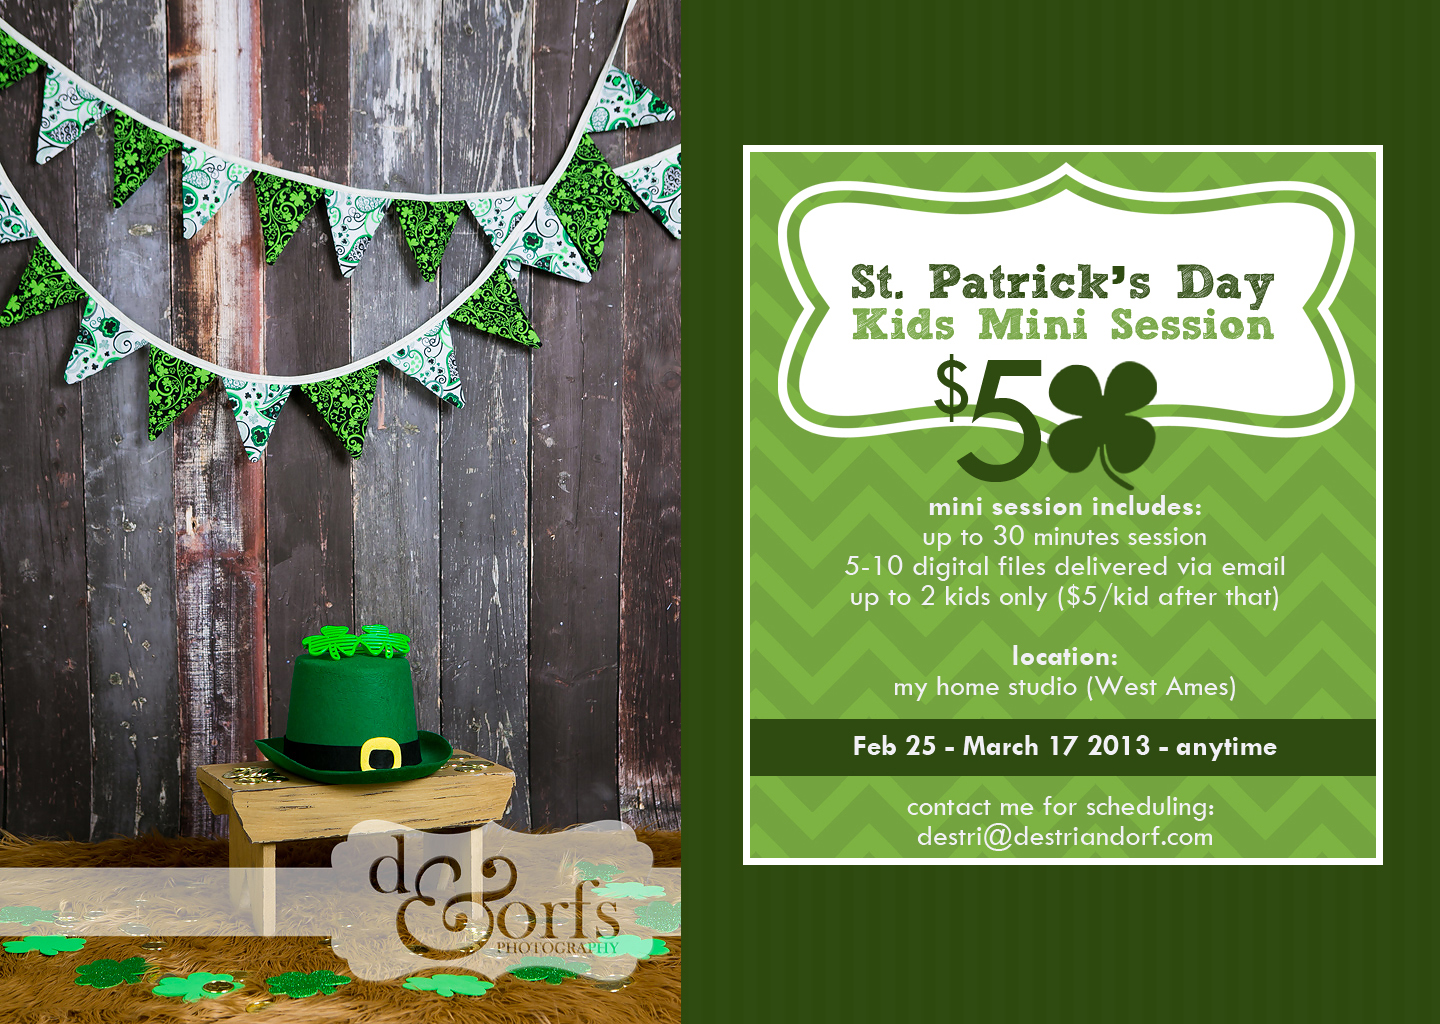 St. Patrick's Day Kids Mini Session